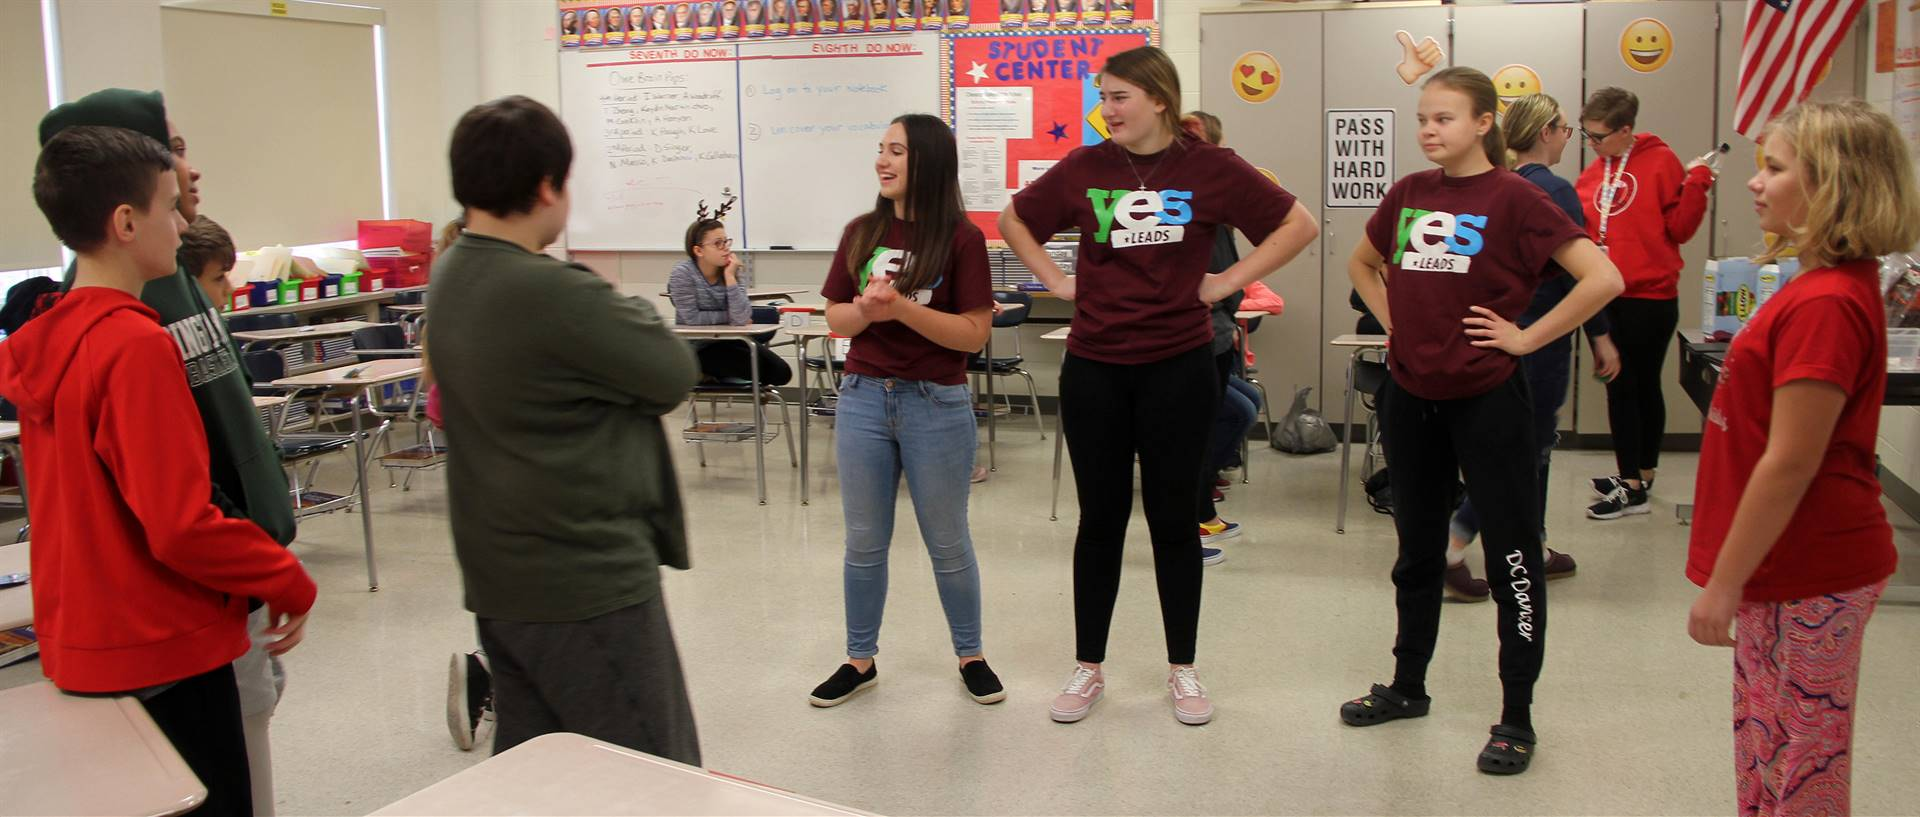 high school yes leads presenters working with middle school students